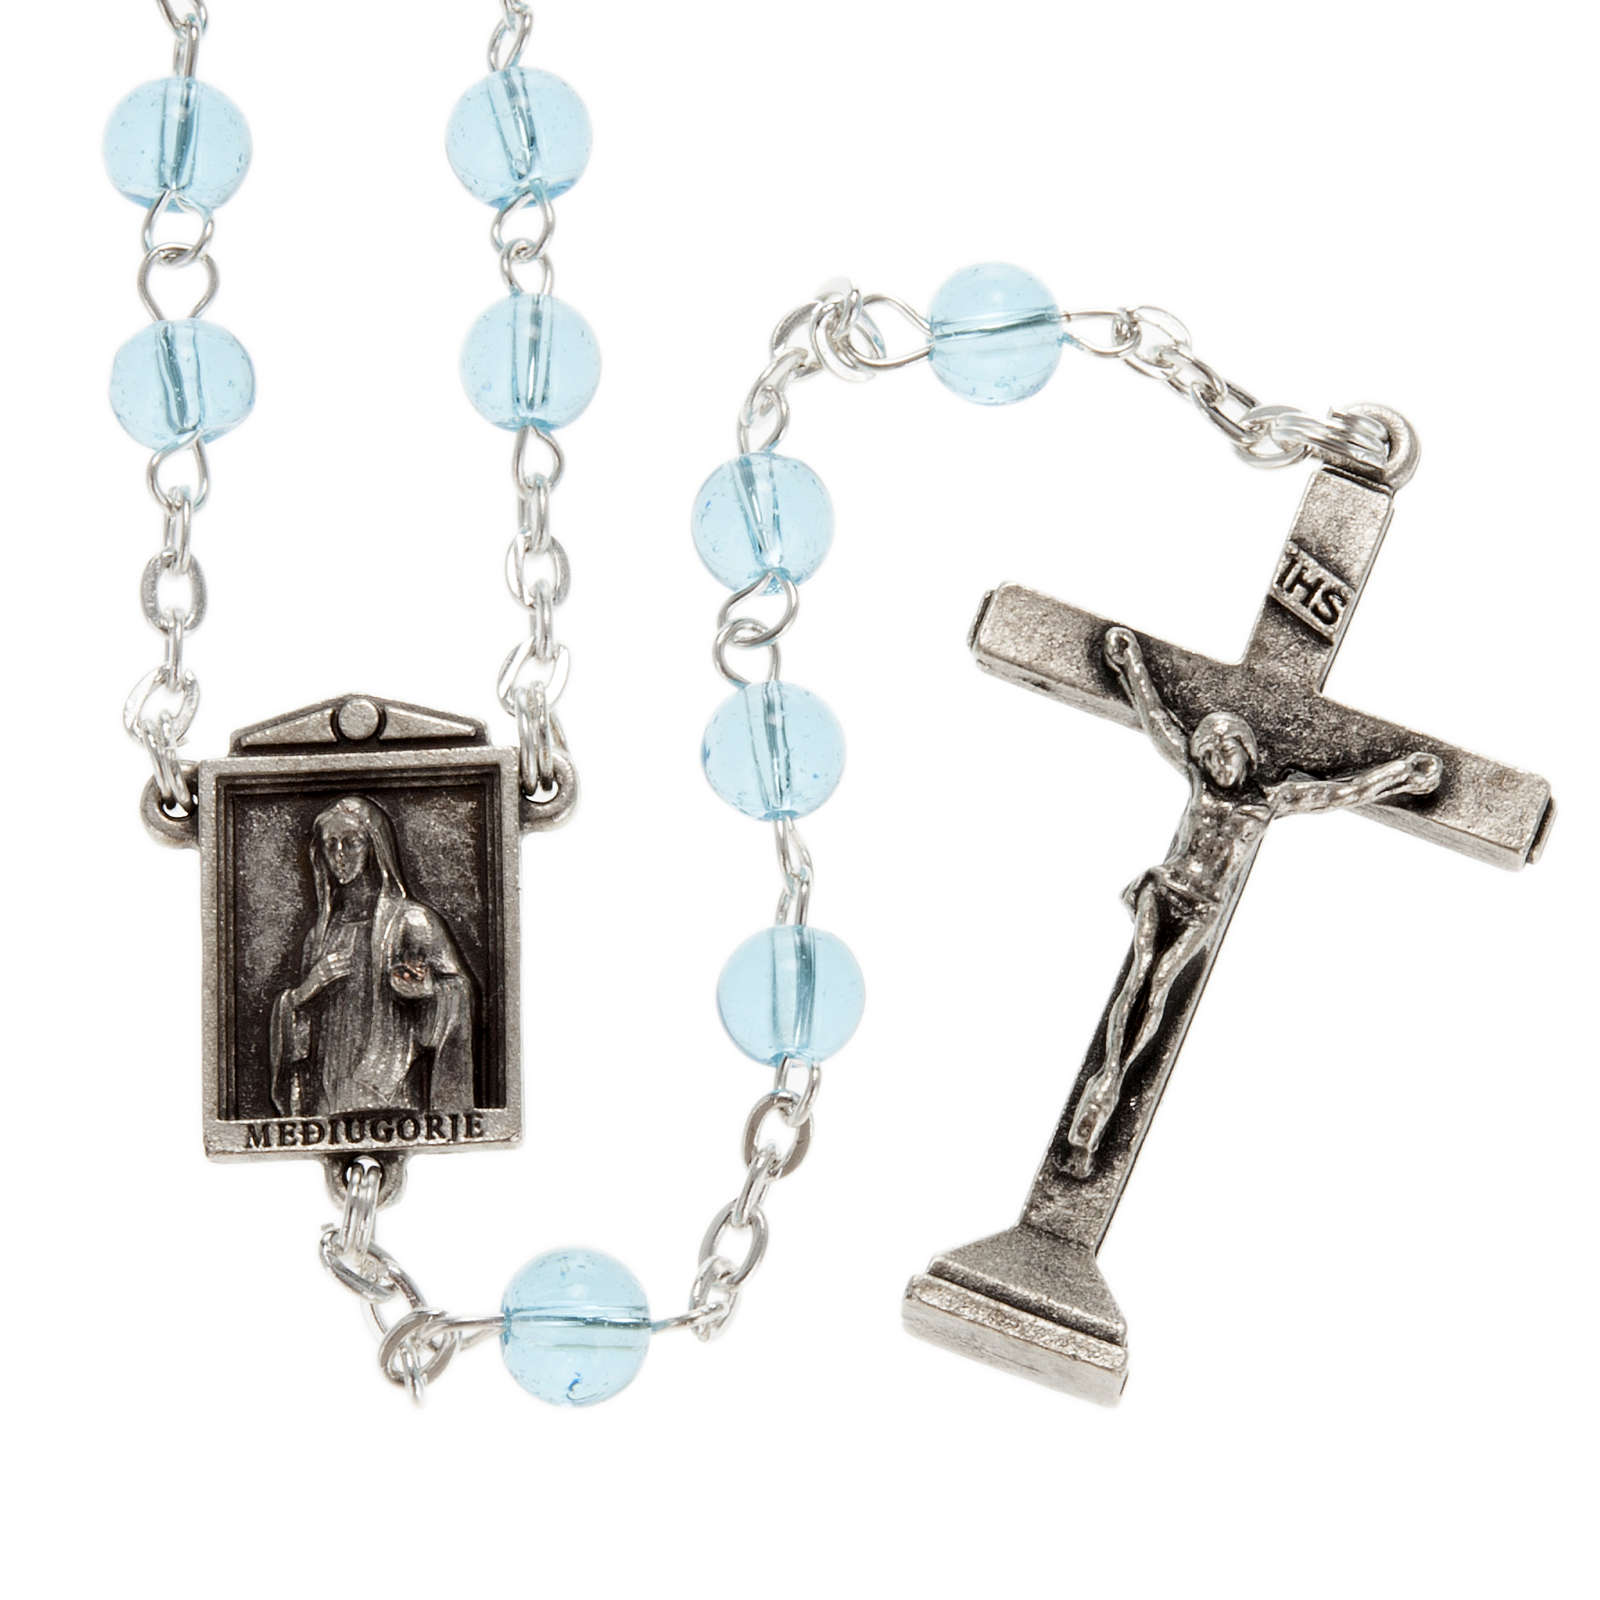 Ghirelli rosary in light blue glass Our Lady of Medjugorje 6mm 4